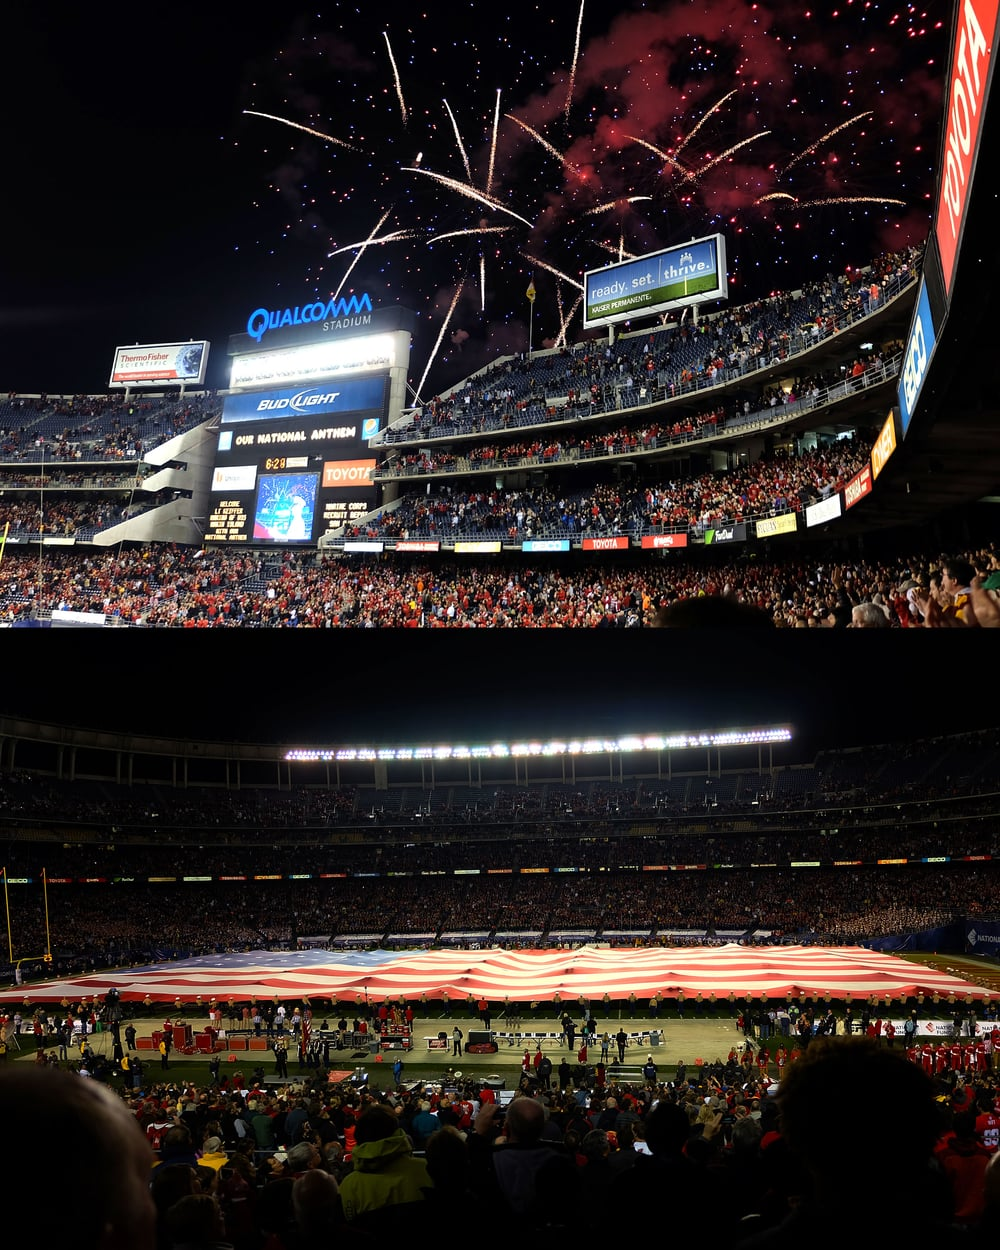 The Holiday Bowl at Qualcomm Stadium in San Diego, California.